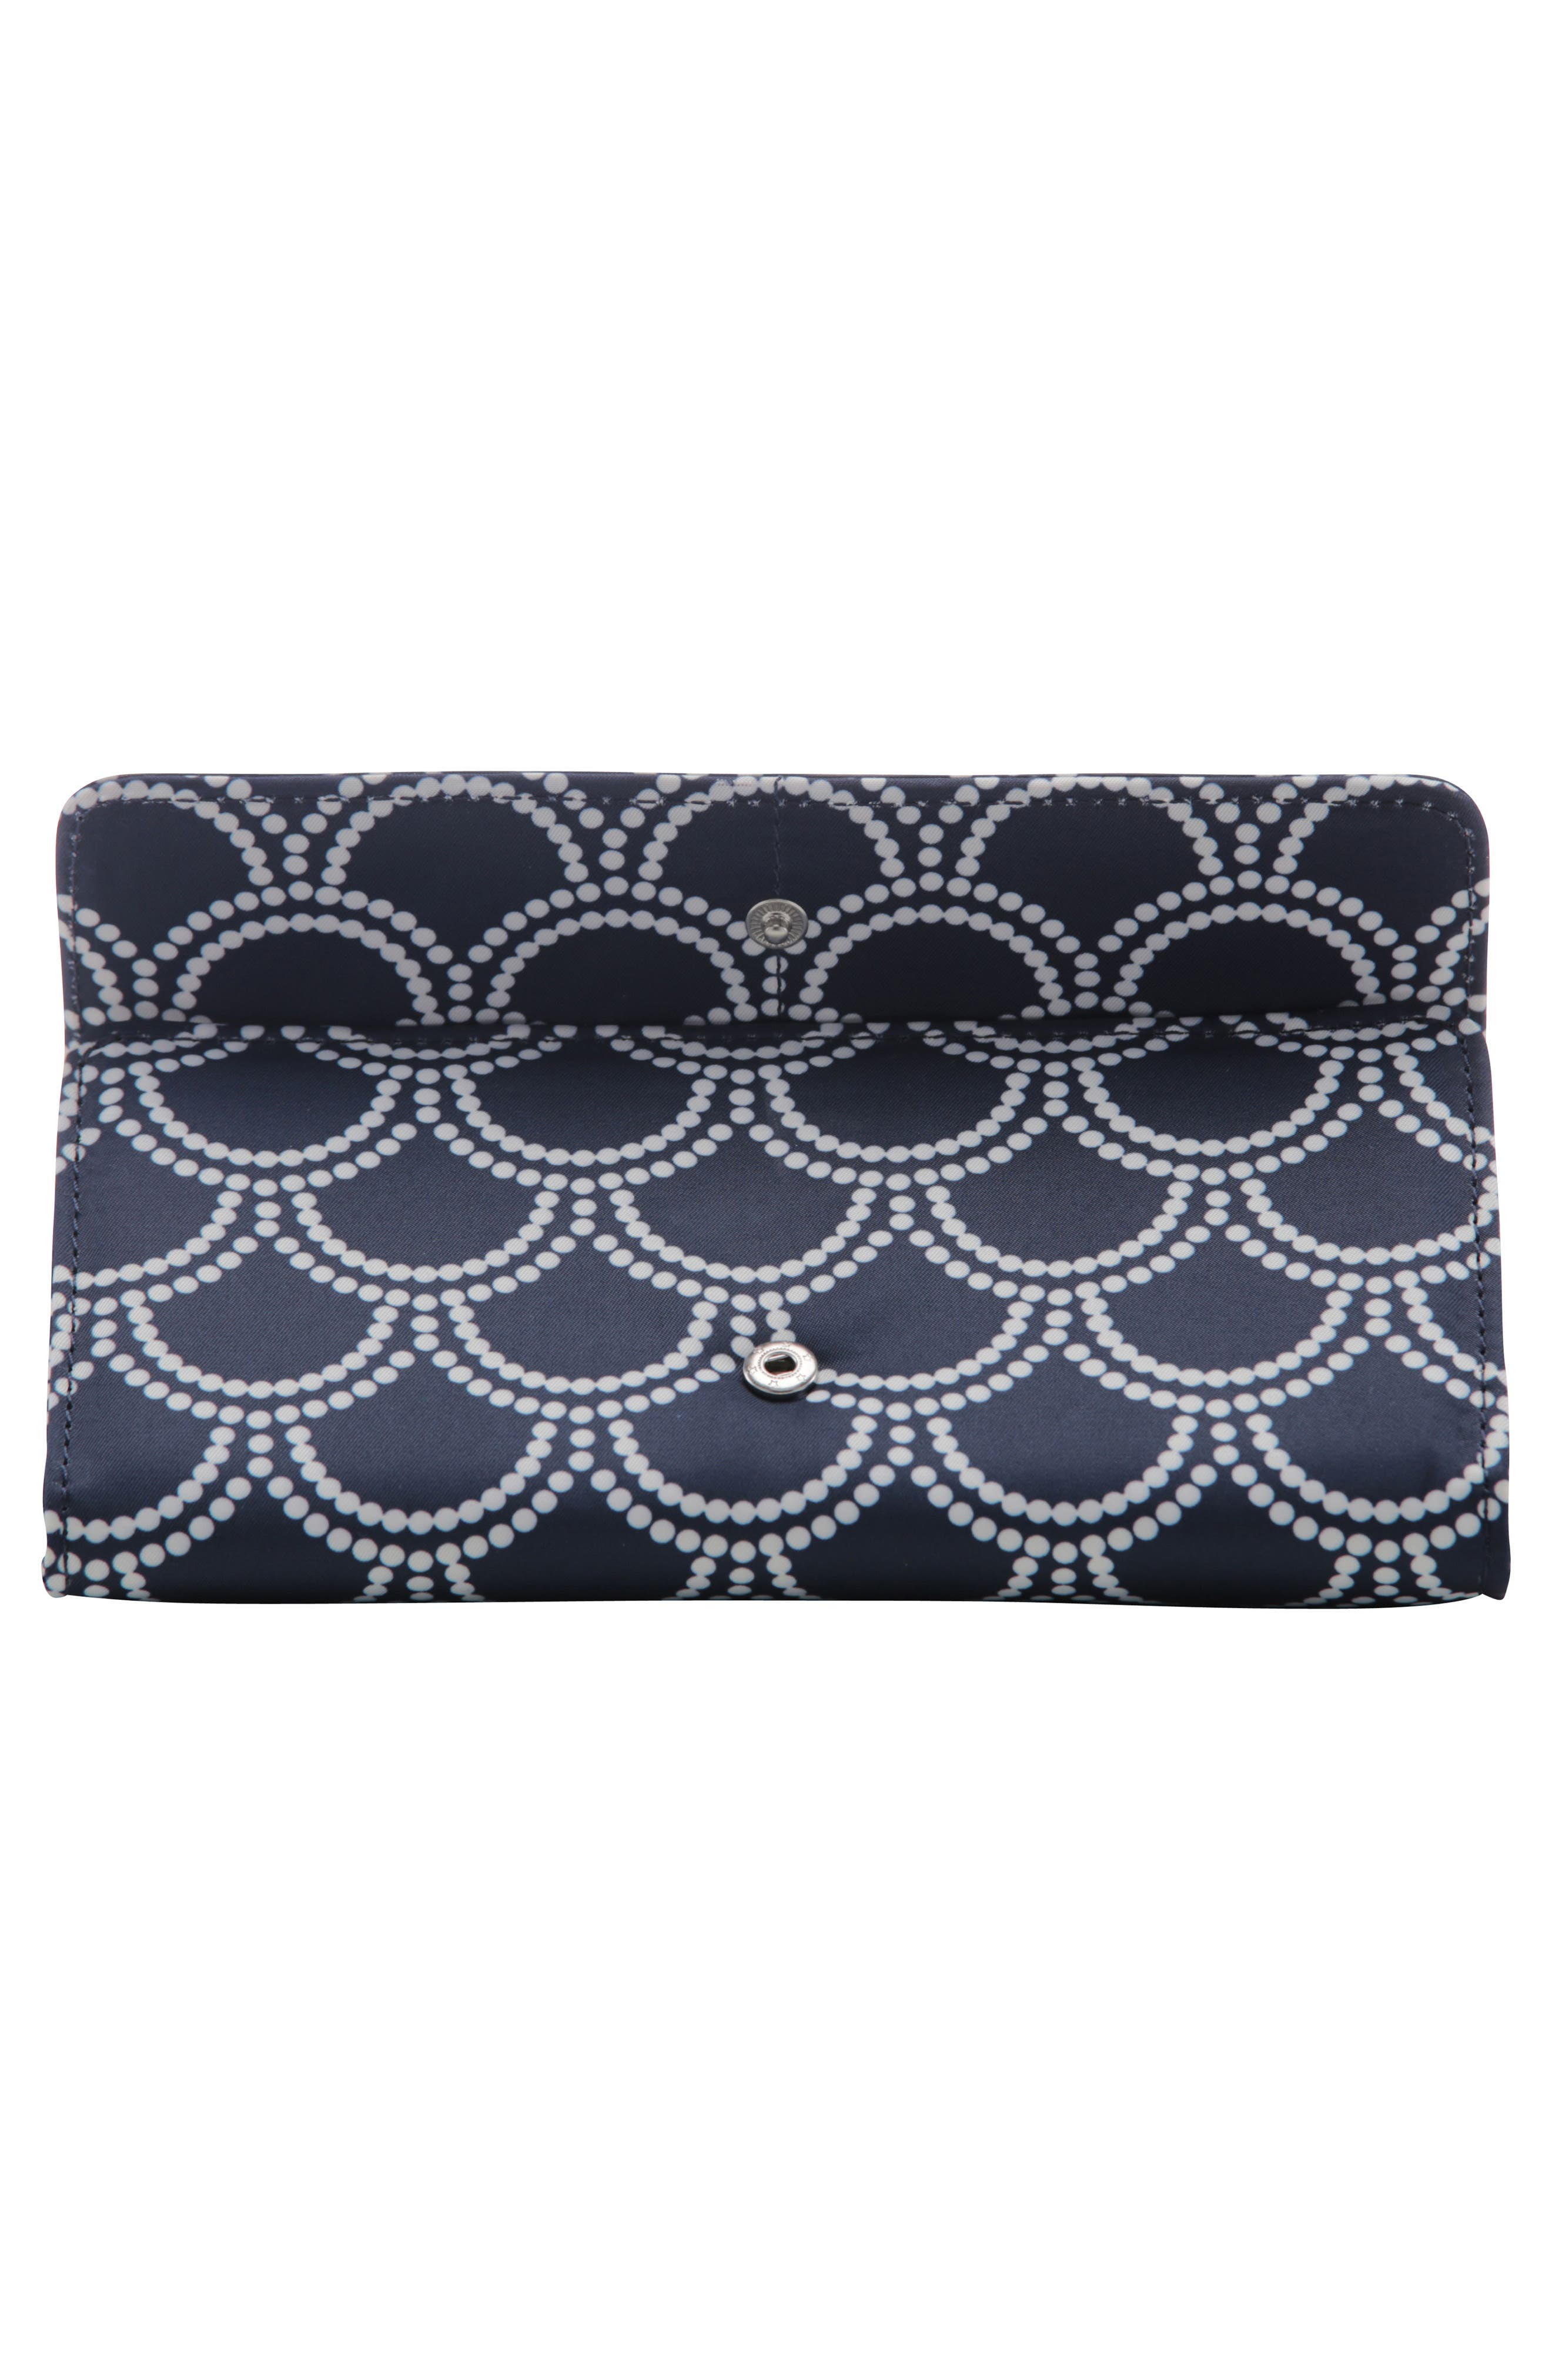 Be Rich - Coastal Collection Trifold Clutch Wallet,                             Alternate thumbnail 2, color,                             NEWPORT